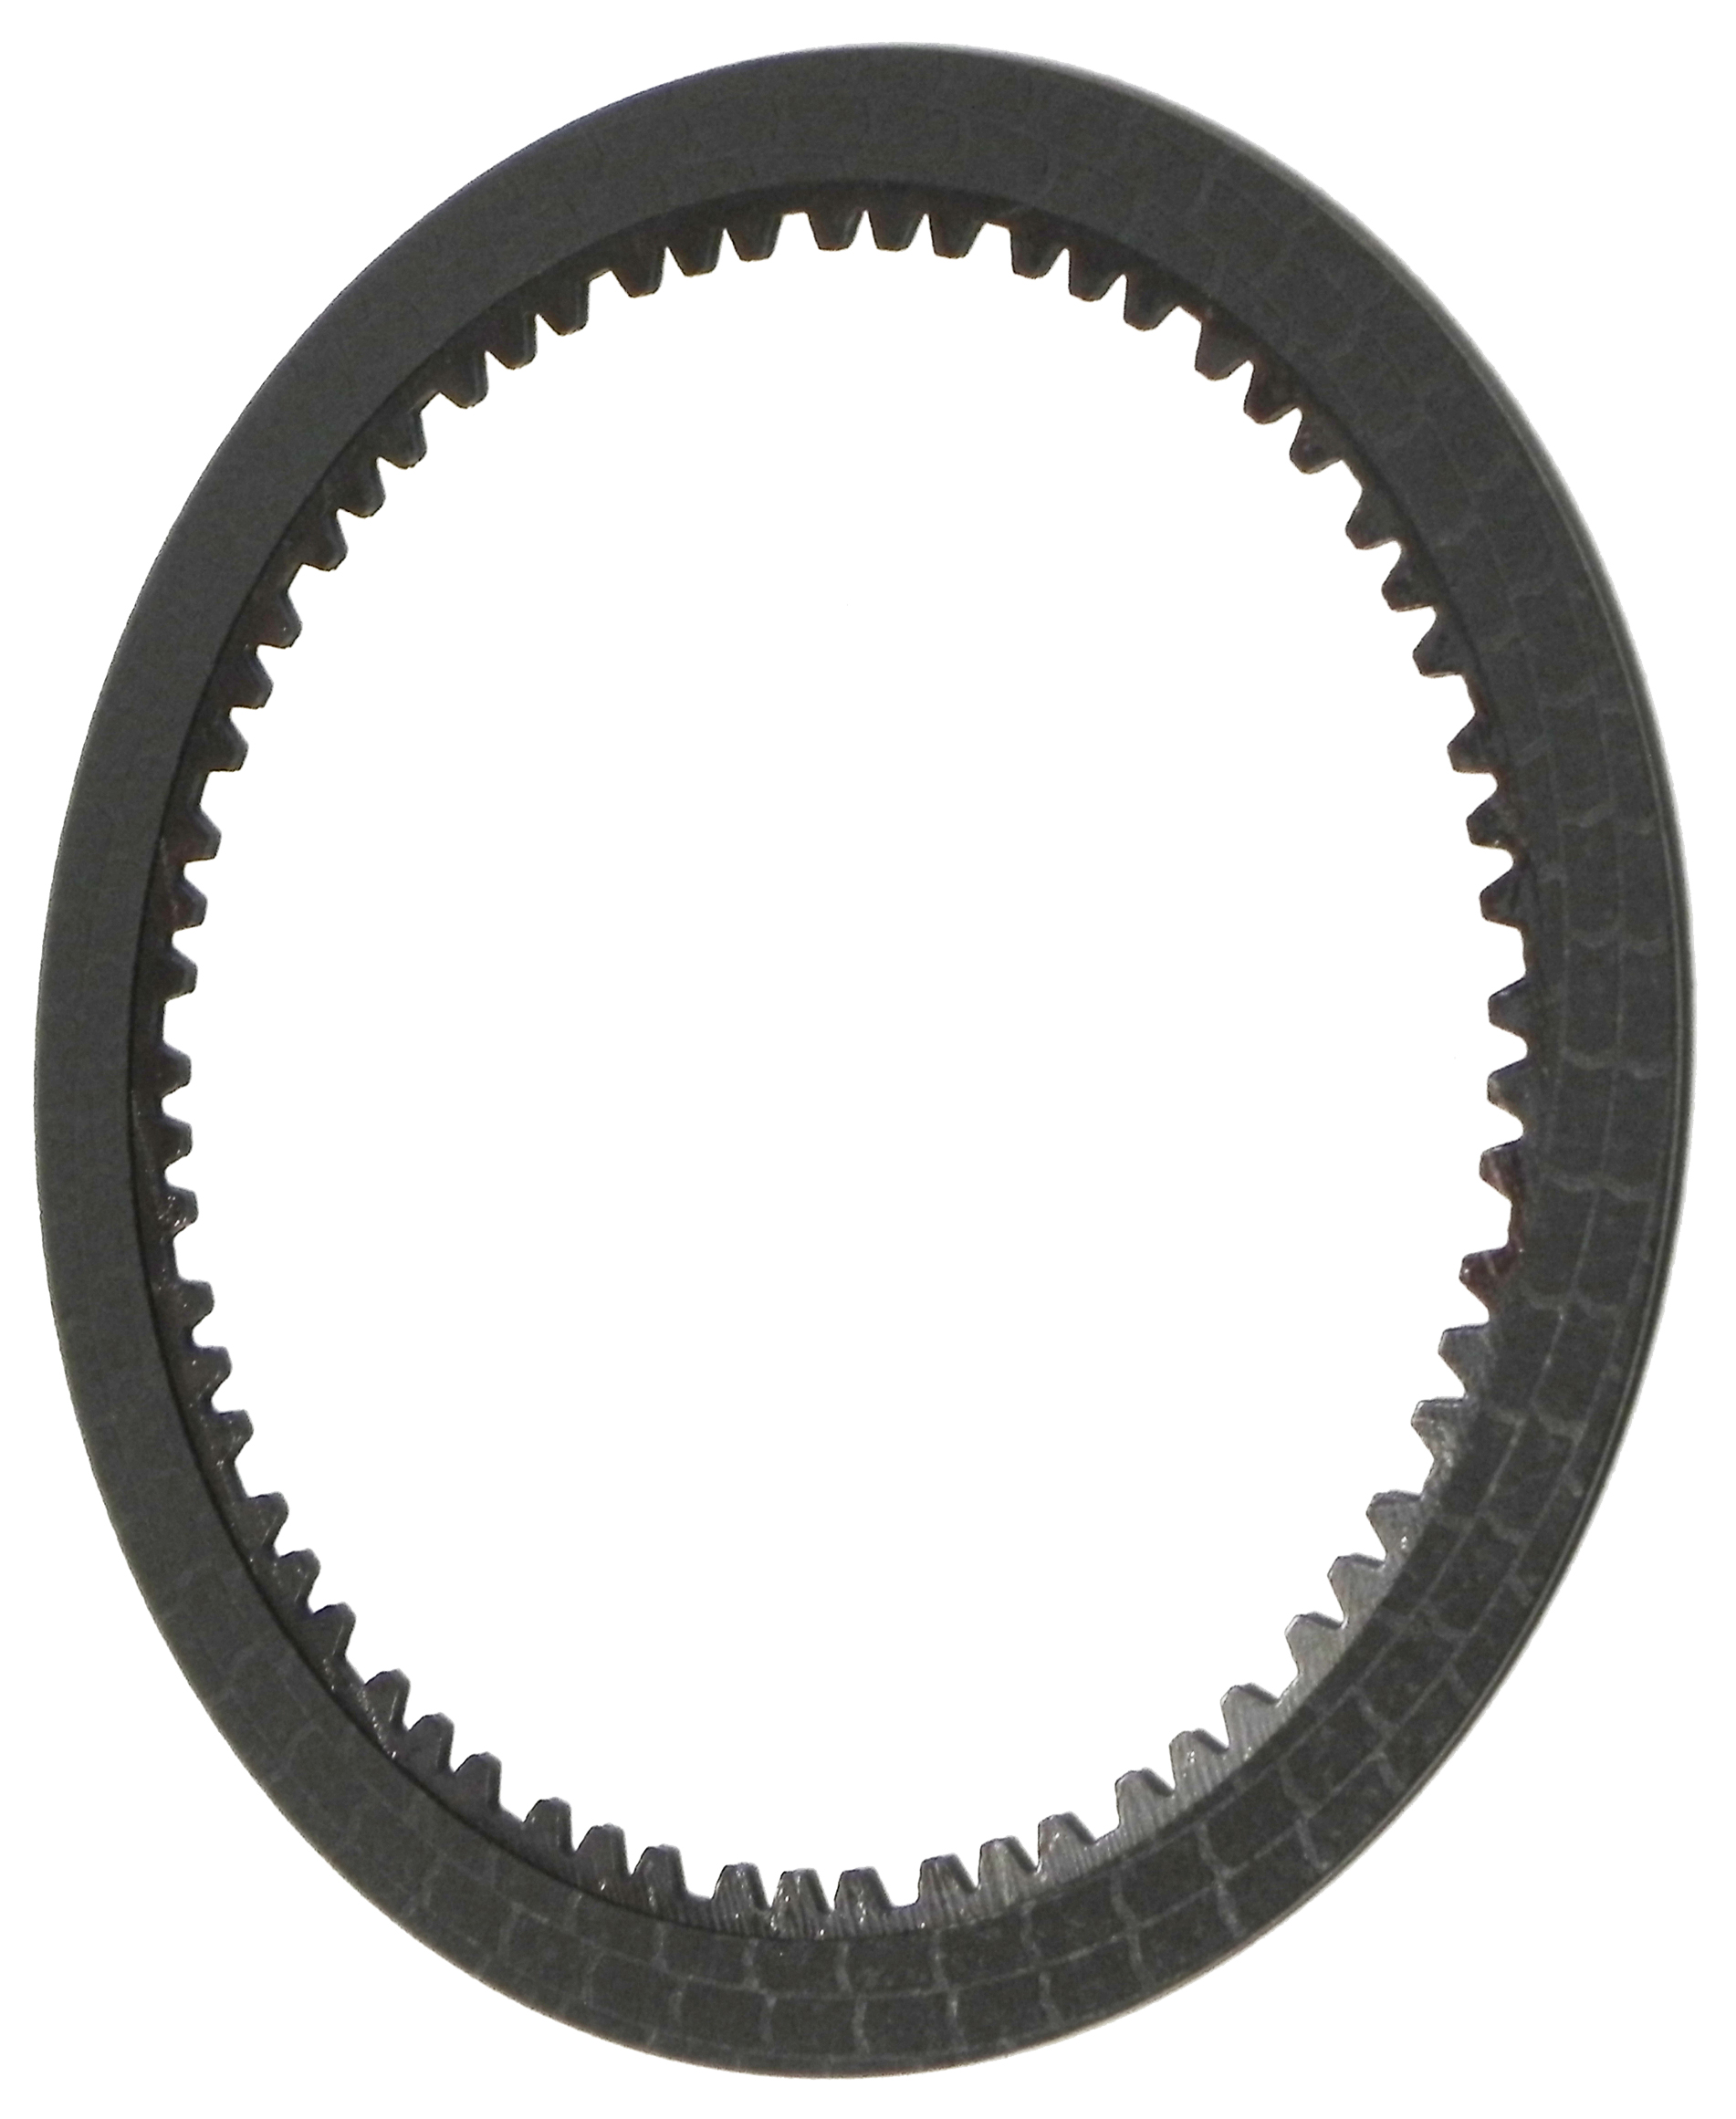 8HP55 / 0BK, 8HP70, 8HP50Z (HT) Hybrid Technology Friction Clutch Plate